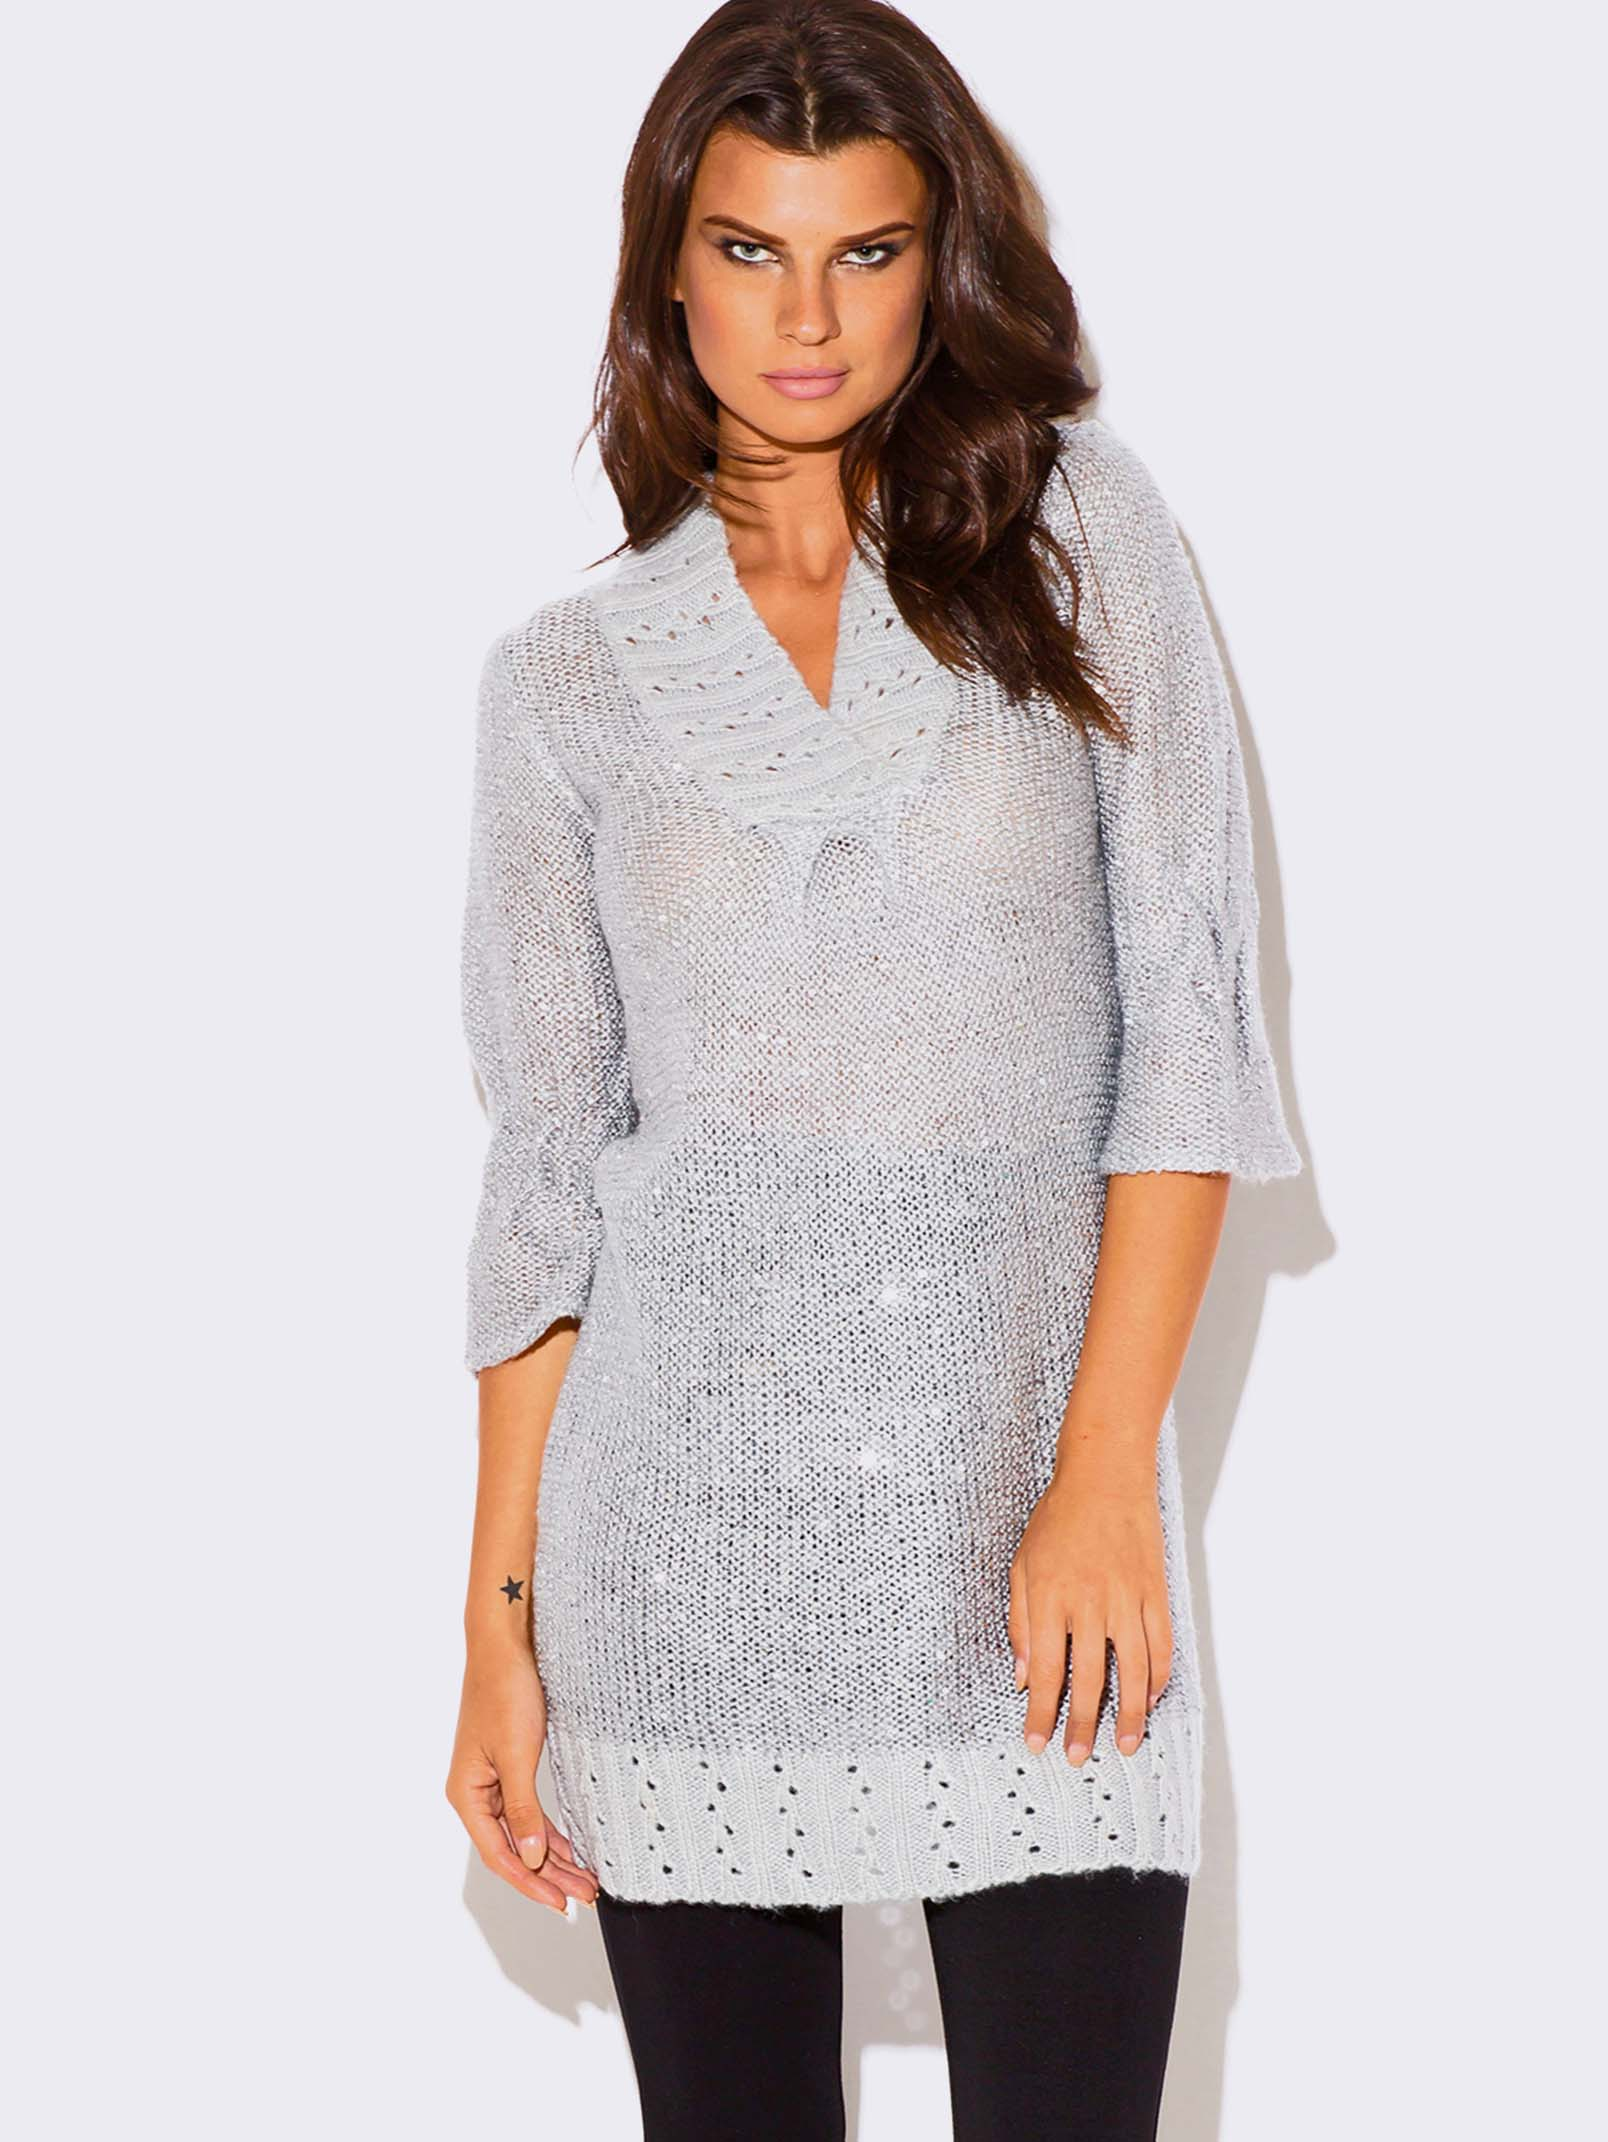 Sweater with Sequin Dress